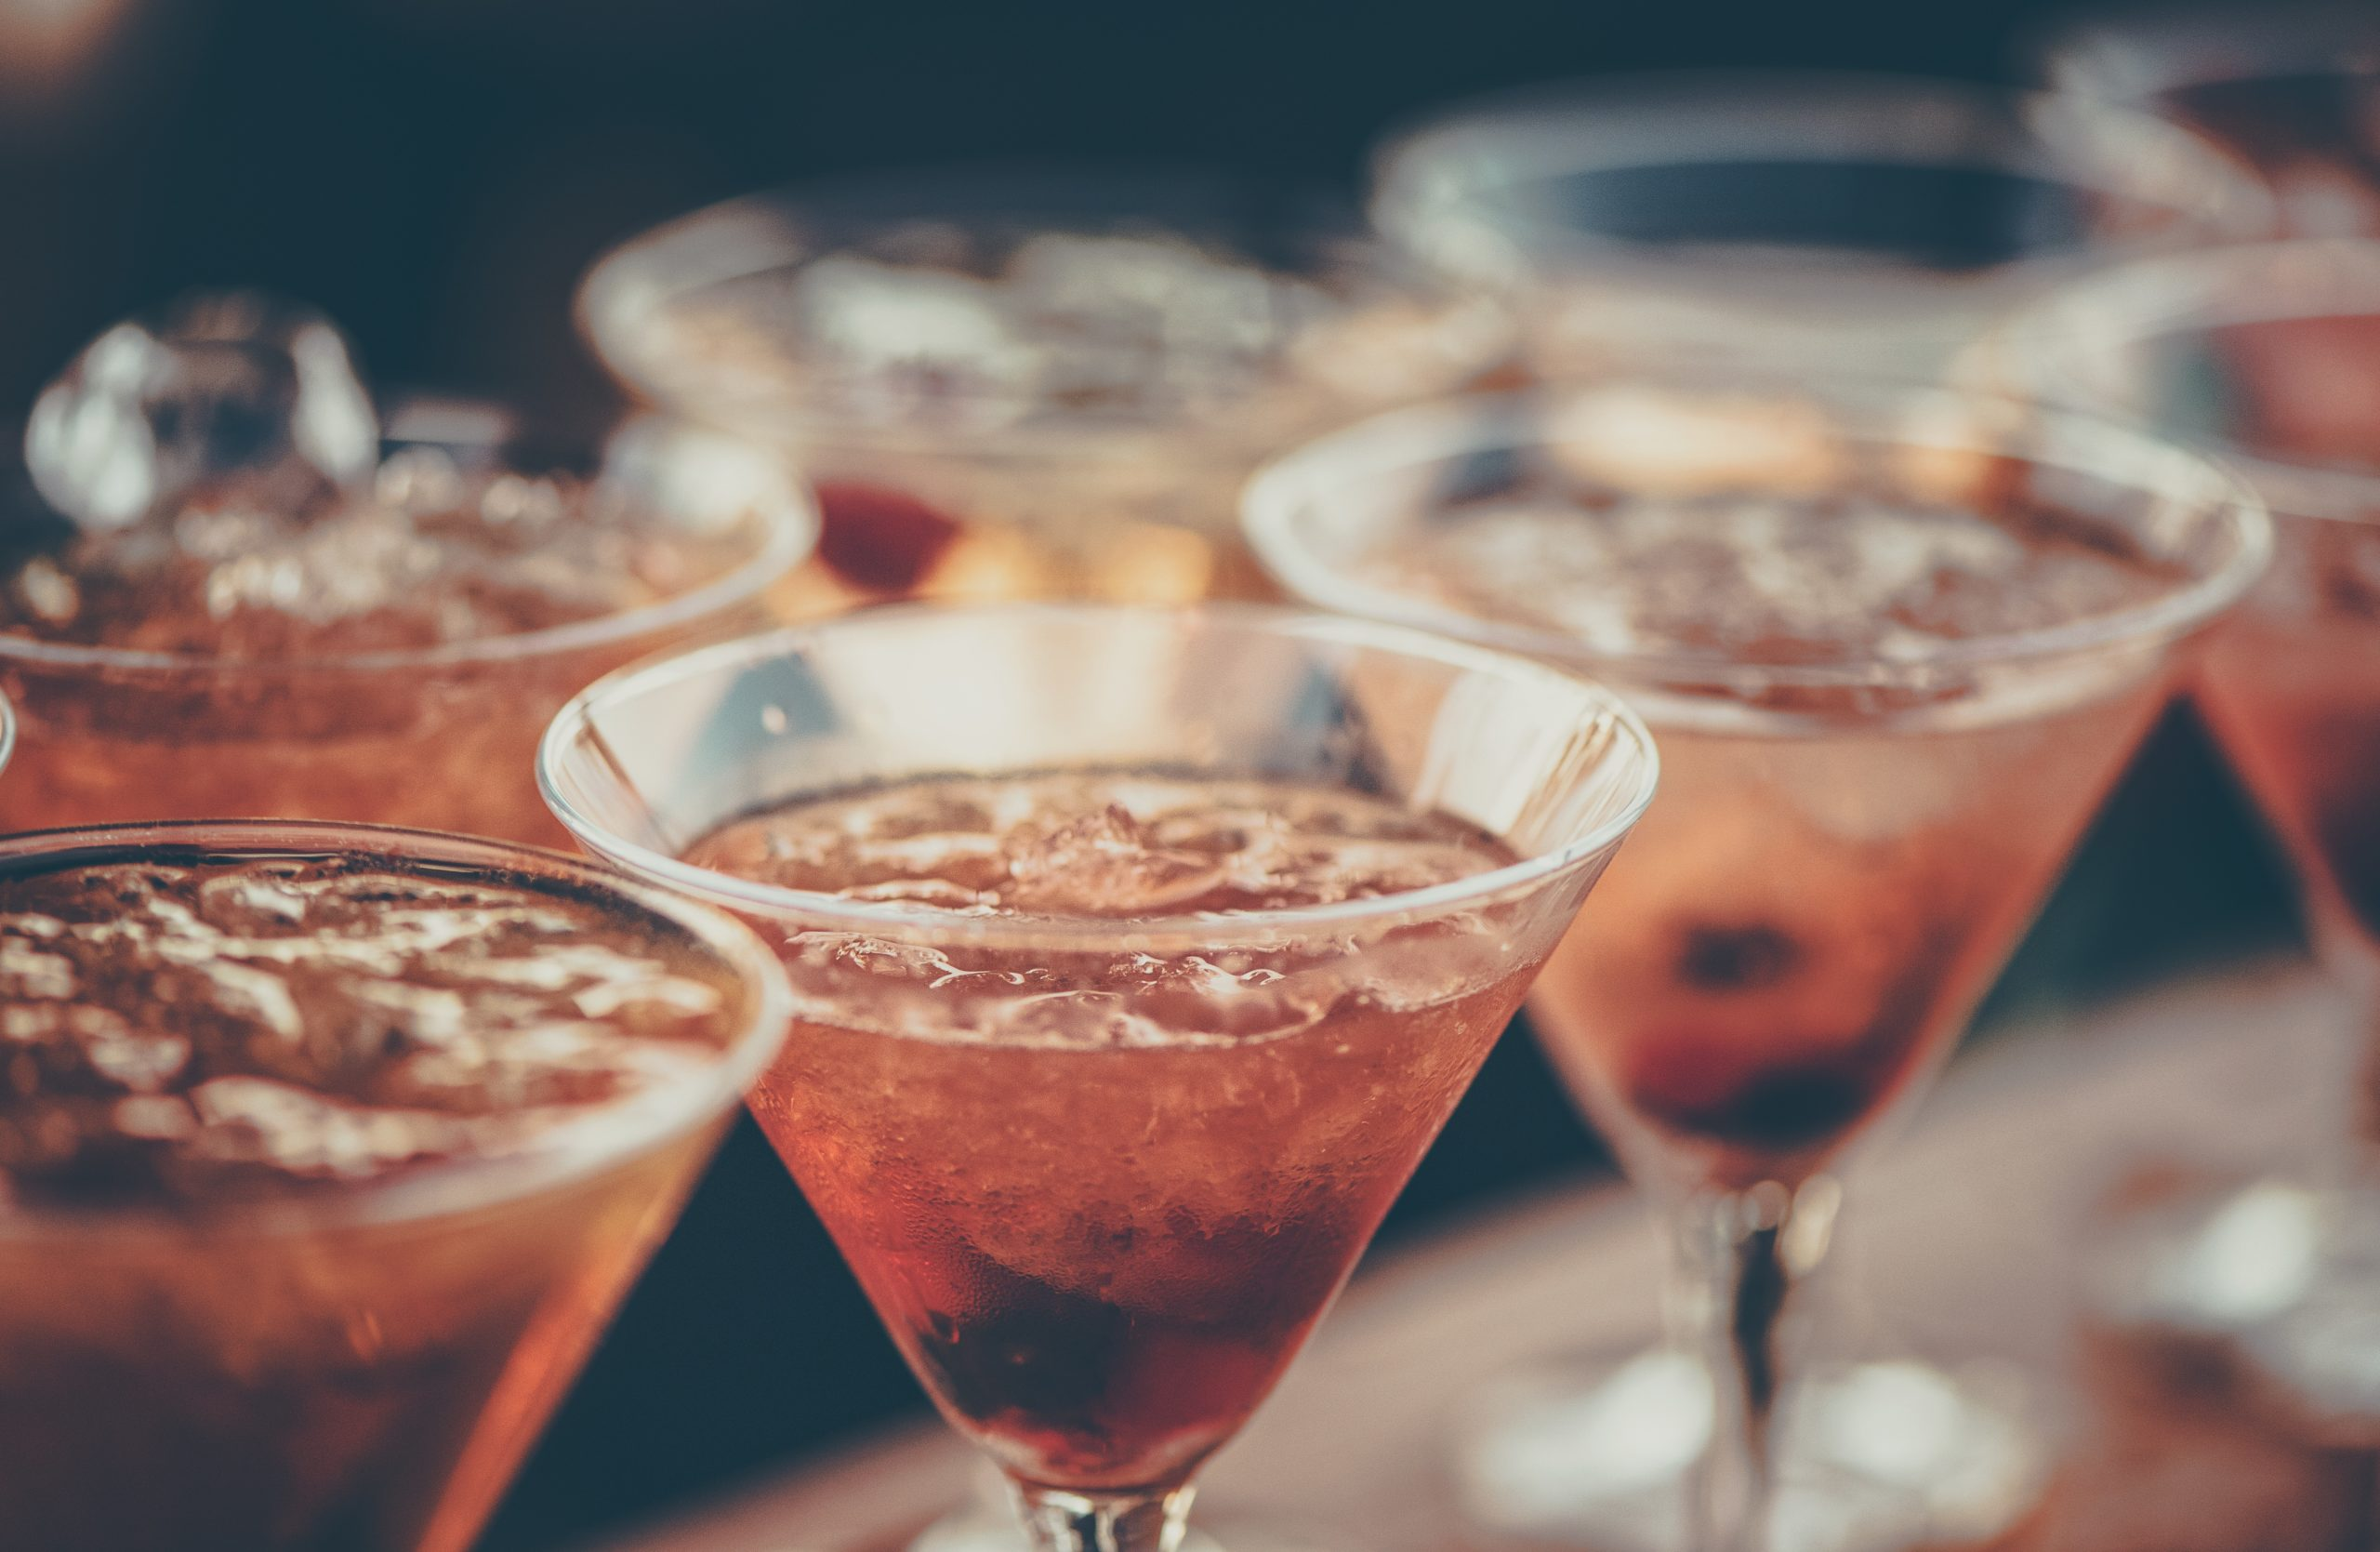 Why You Should Skip That Drink at The Holiday Party This Year